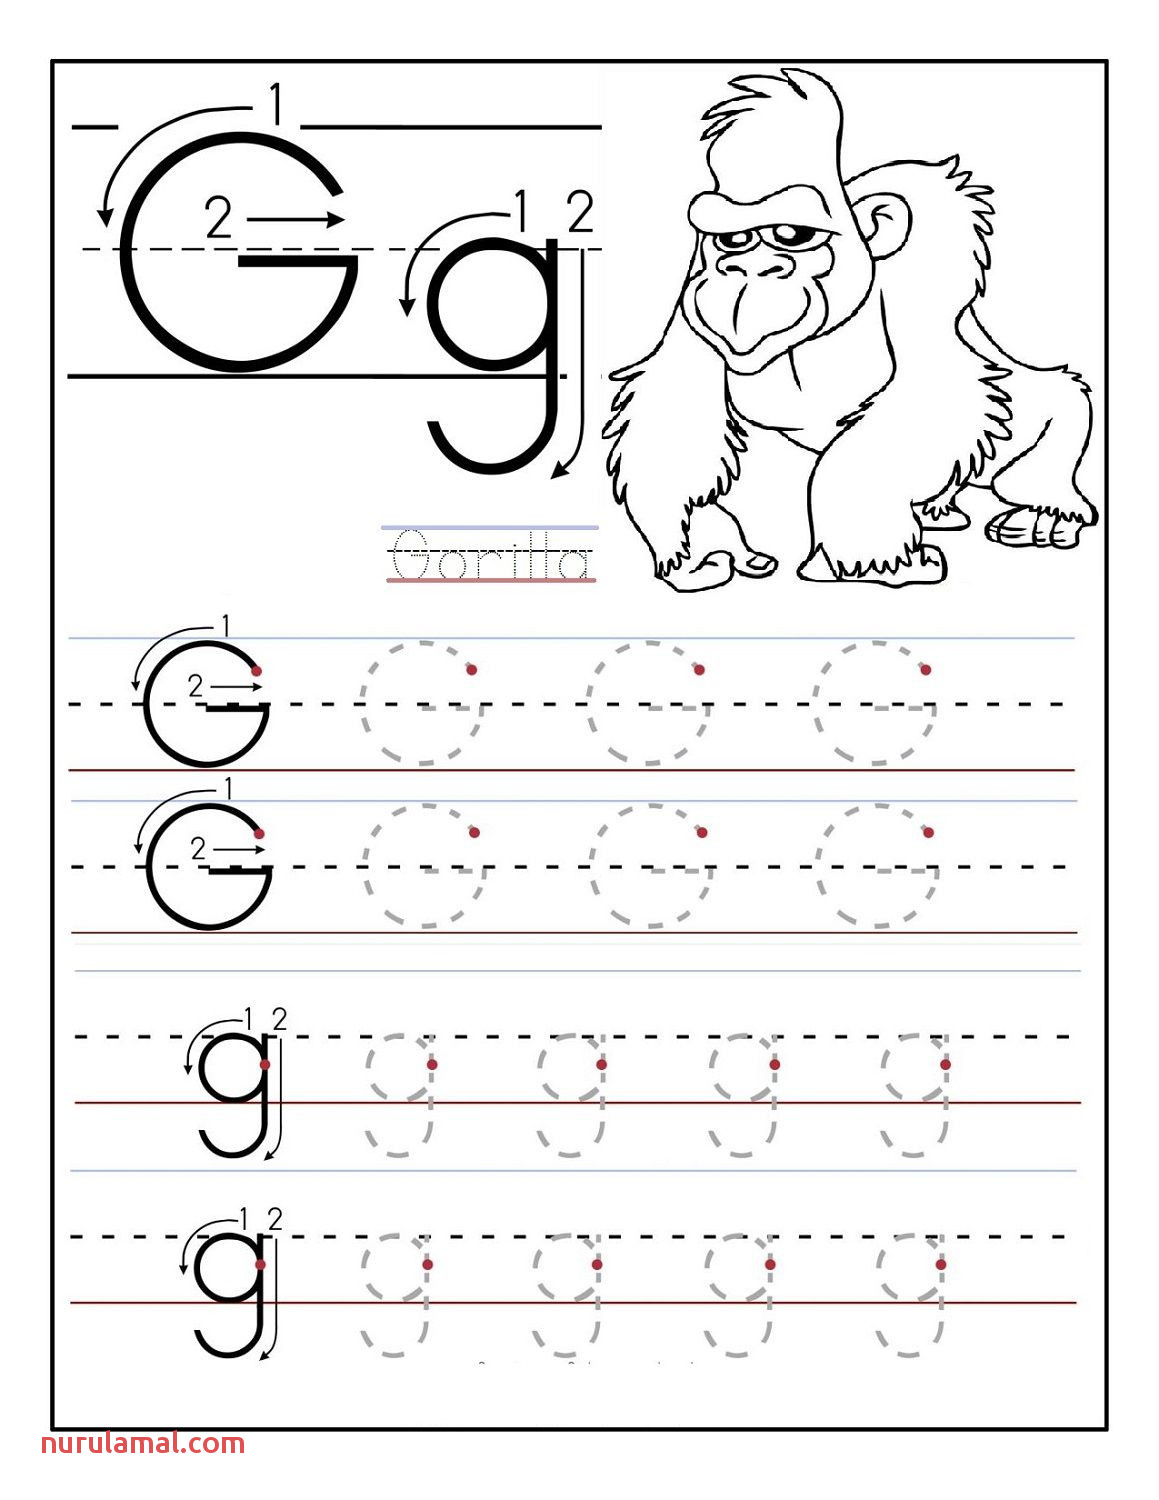 Printable Blank Handwriting Worksheets